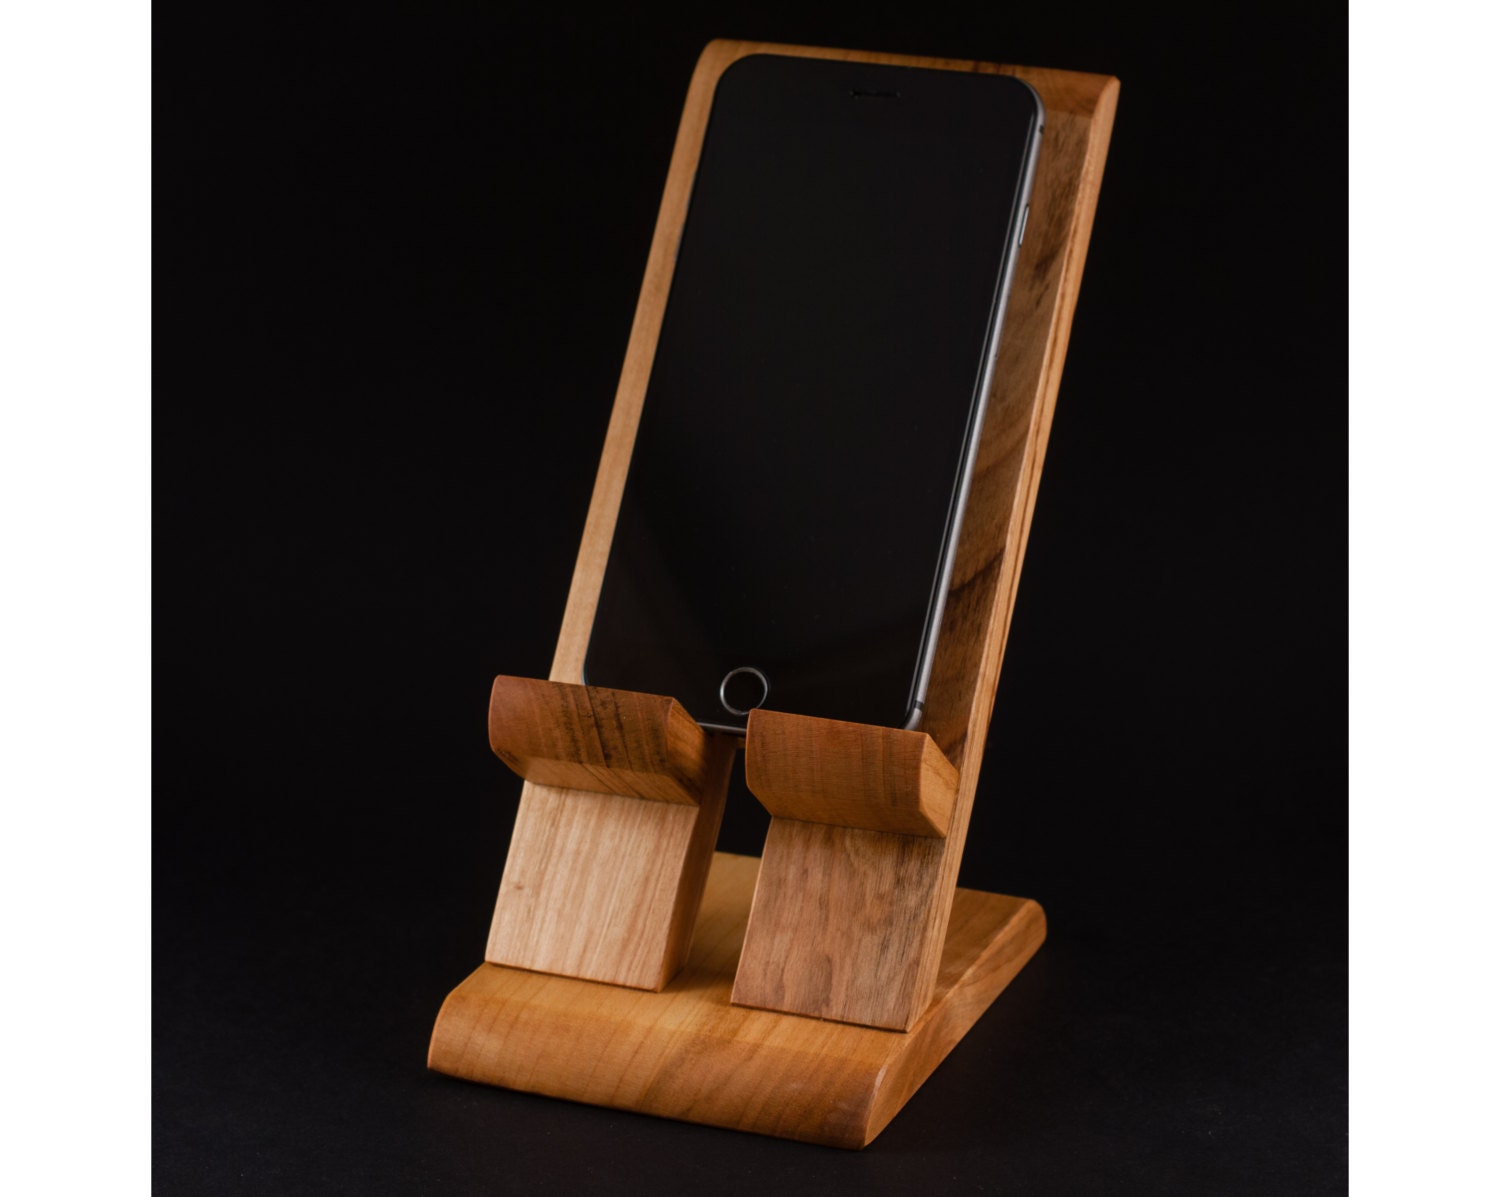 Handmade wooden iphone plus stand charging station